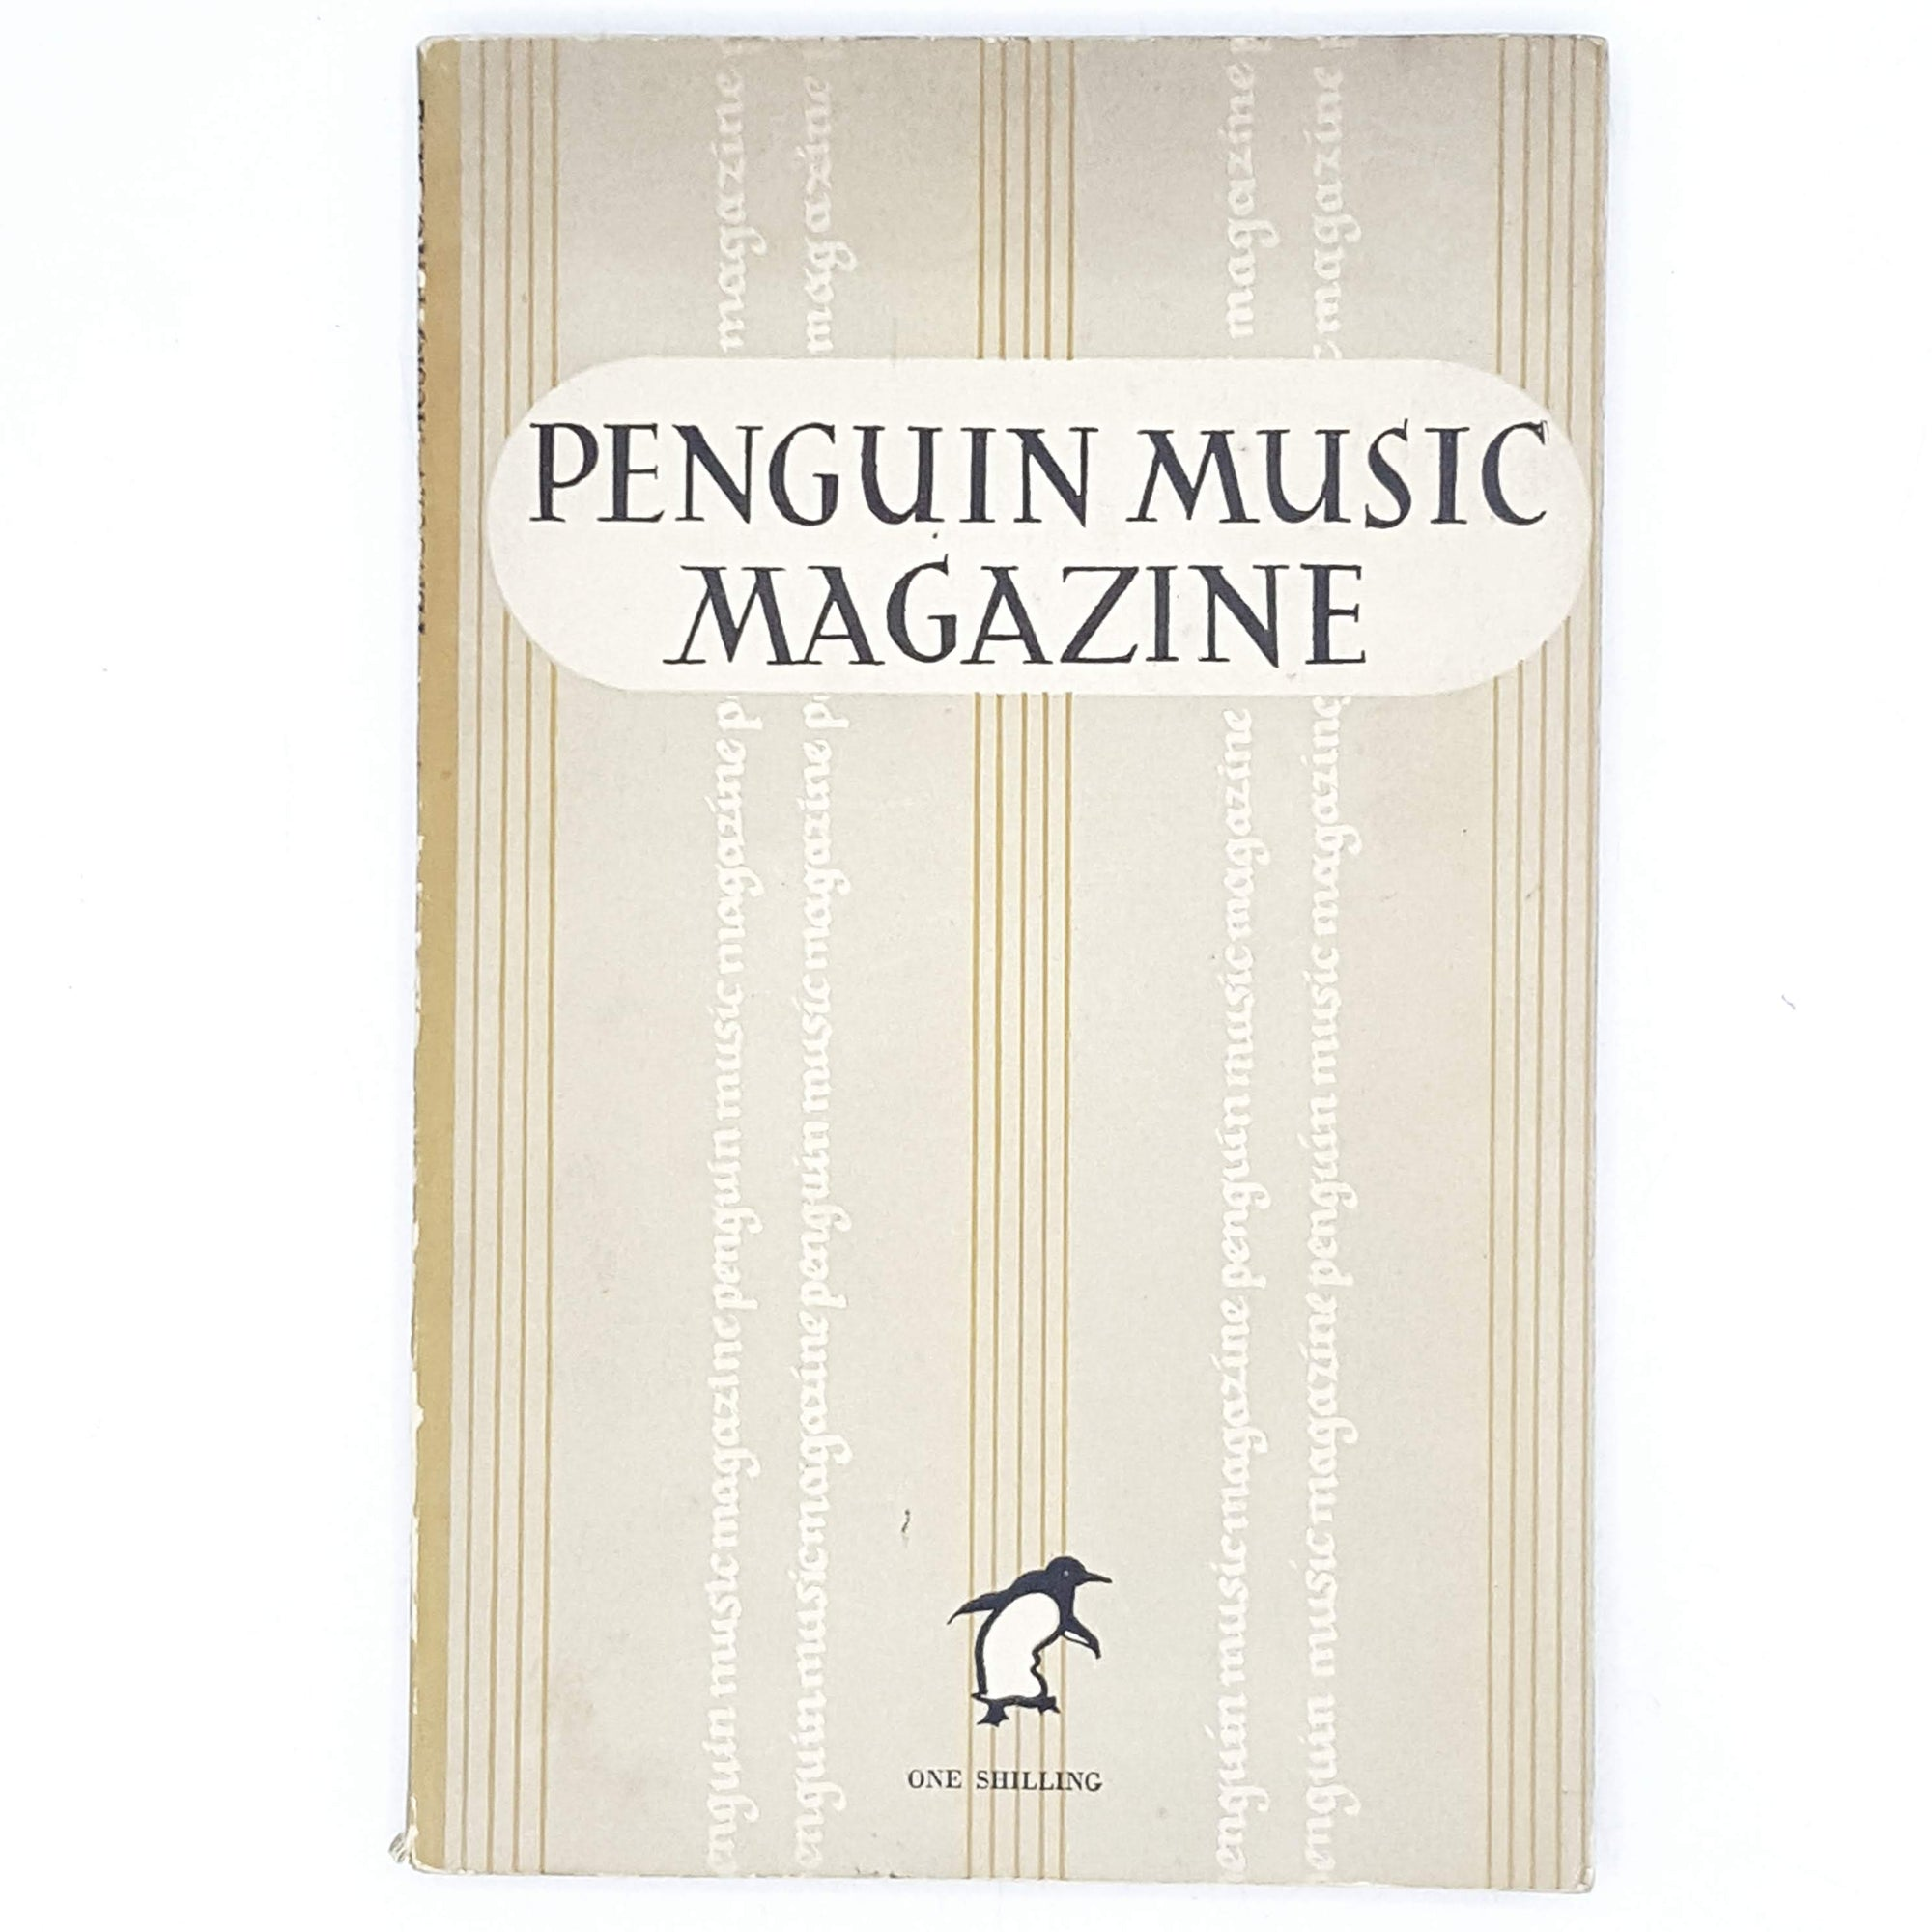 First Edition Penguin Music Magazine I 1946